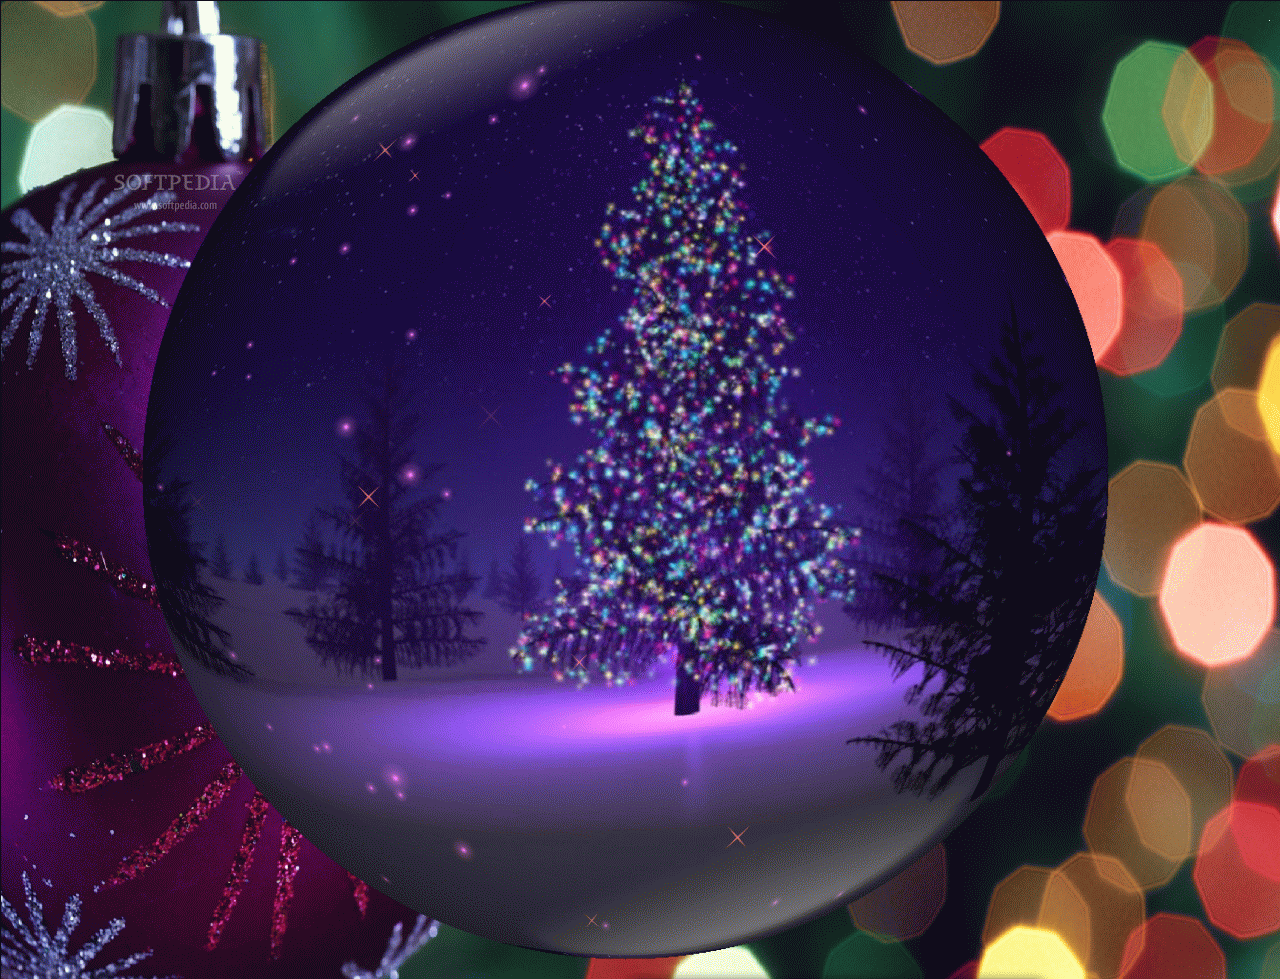 Christmas Globe Animated Wallpaper ng cc p n ging 1280x979